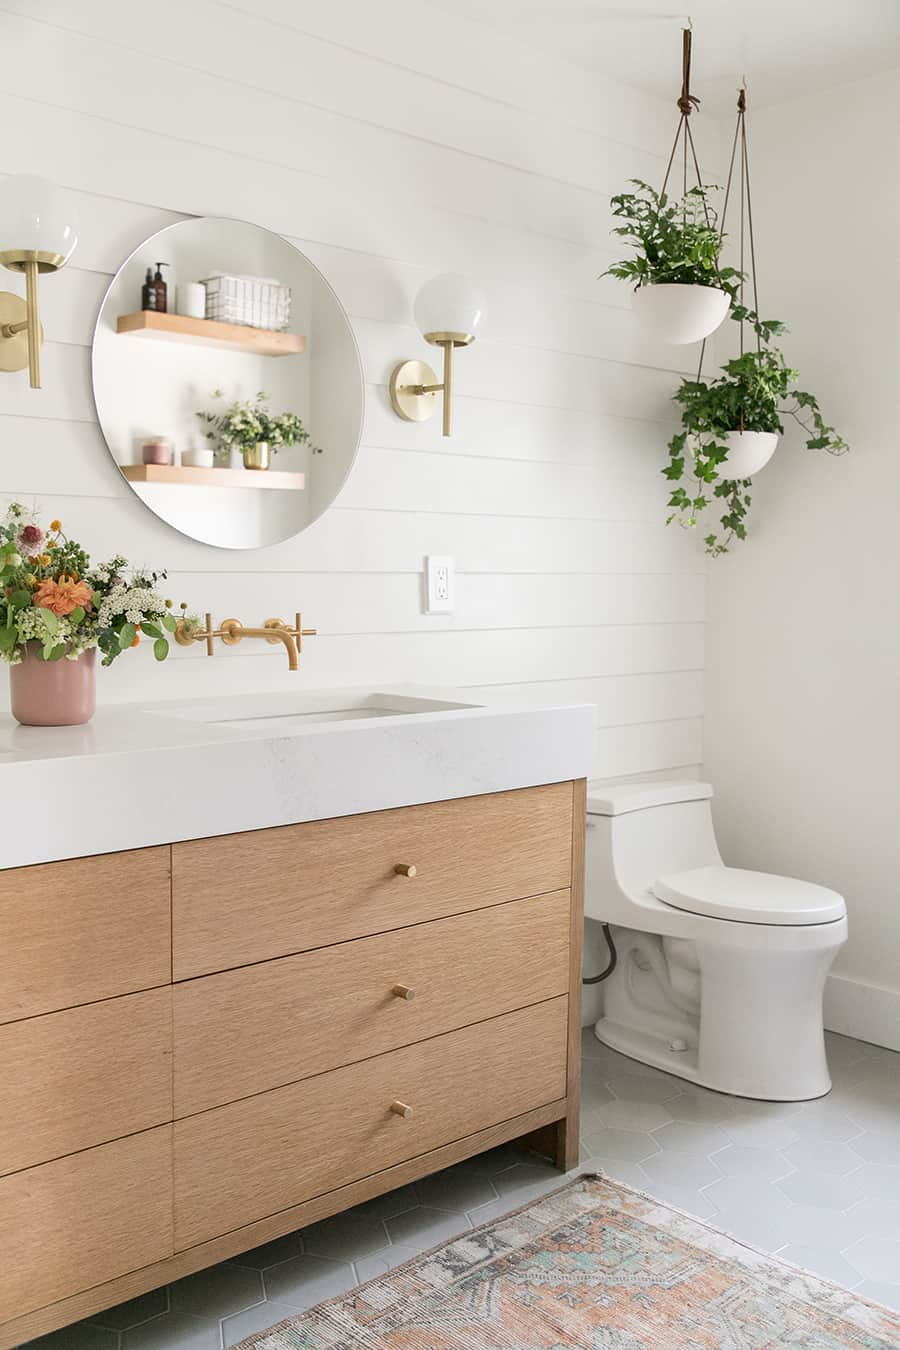 Modern, charming bathroom with hanging plants and wooden vanity.